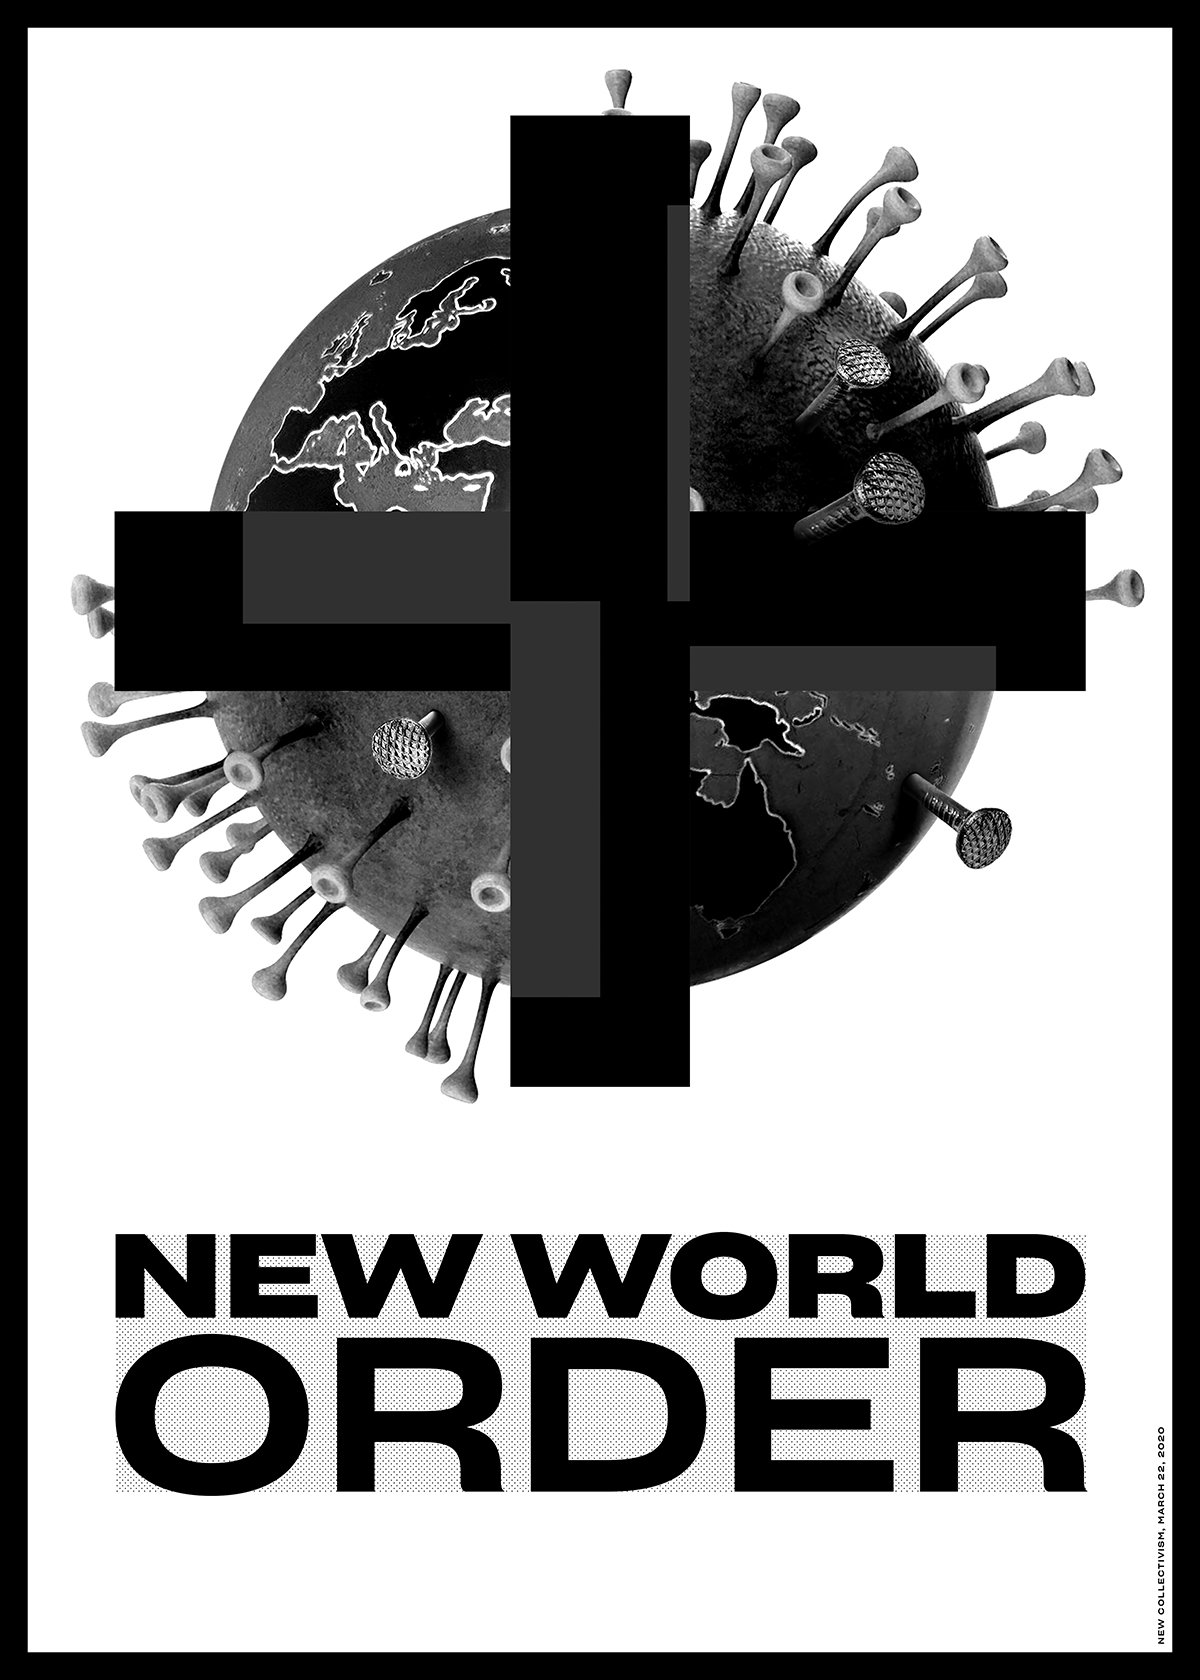 New World Order poster by New Collectivism.